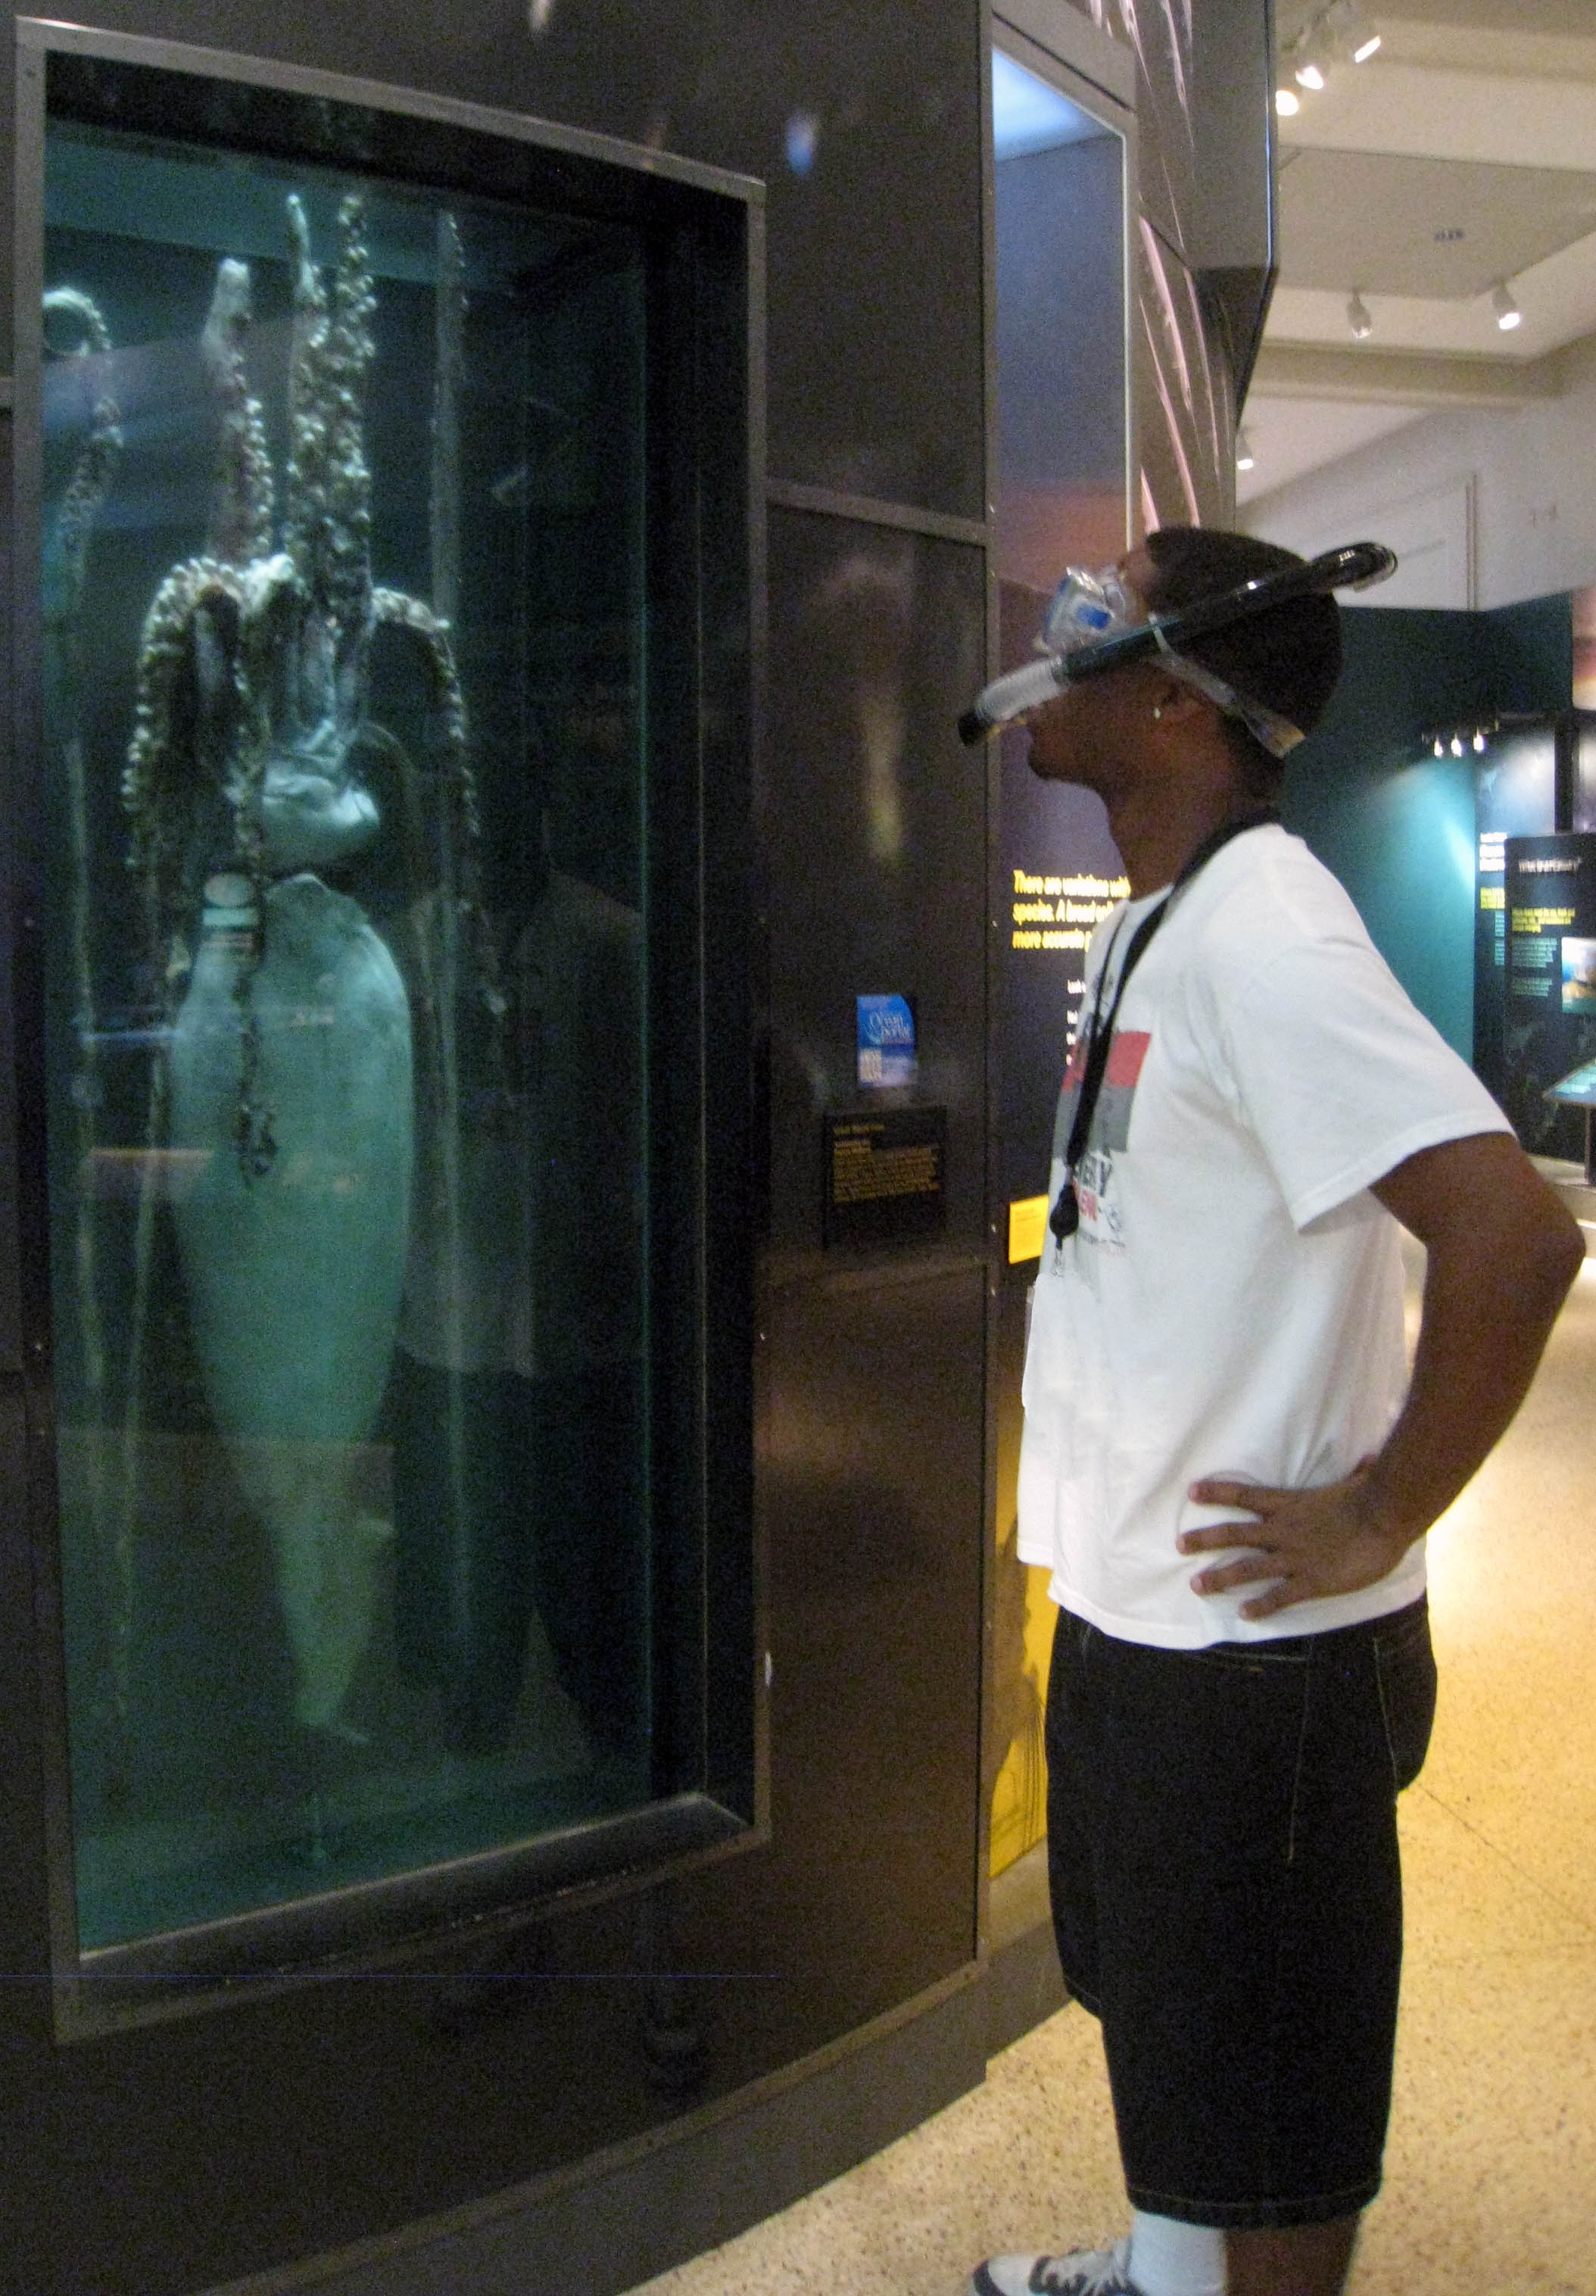 a photo of Ocean Portal intern Brandon adkins in snorkel gear looking at a preserved giant squid in the Smithsonian's Sant Ocean Hall<div class='credit'><strong>Credit:</strong> a photo of Ocean Portal intern Brandon adkins in snorkel gear looking at a preserved giant squid in the Smithsonian's Sant Ocean Hall</div>